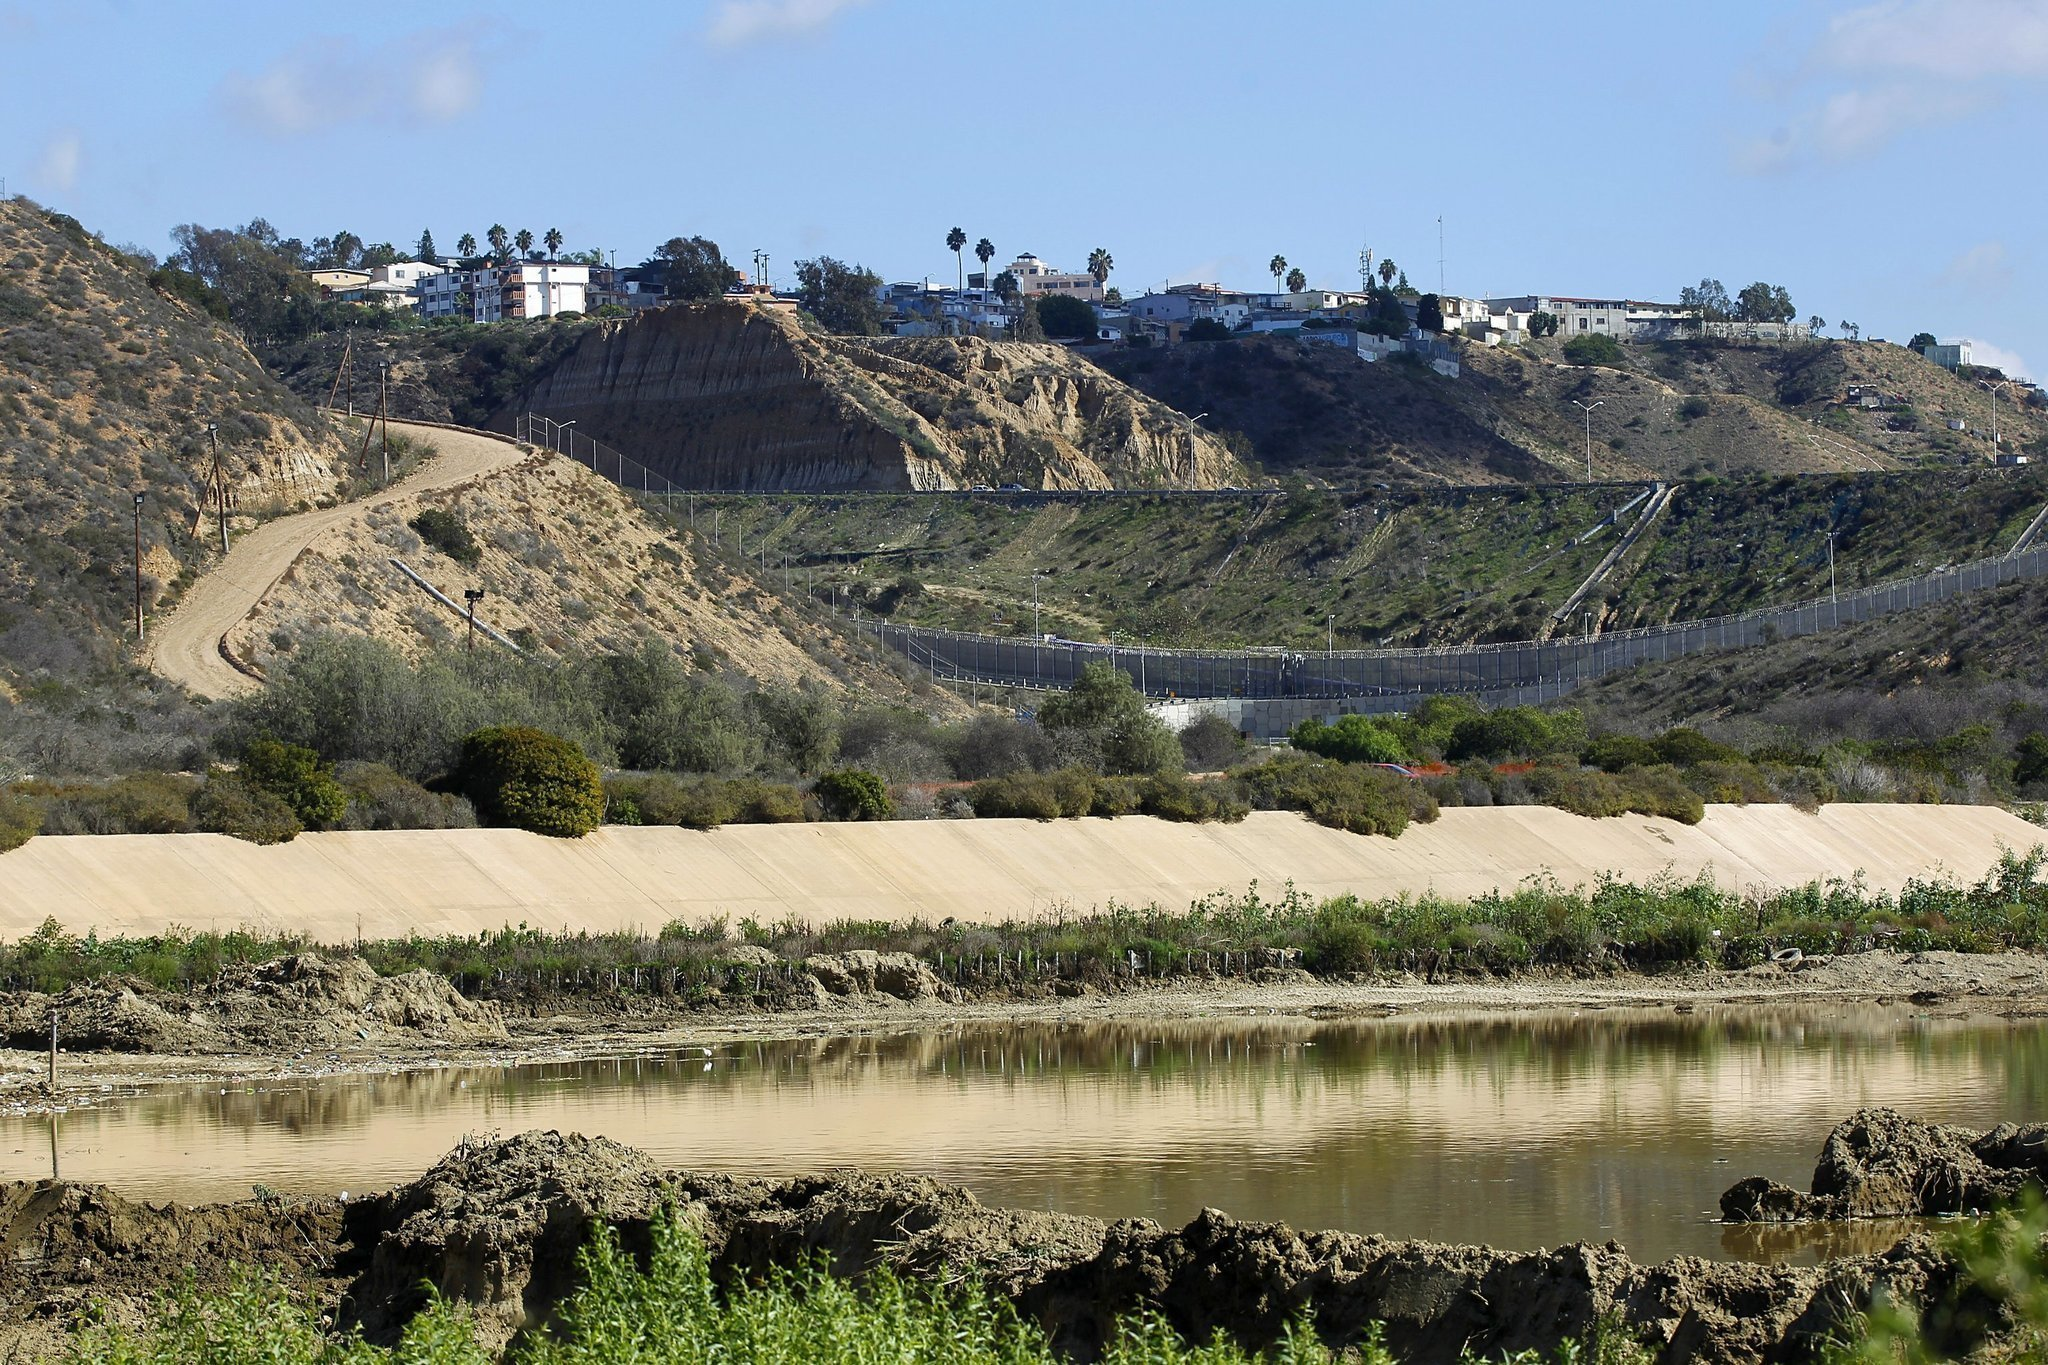 U S Mexico accord focuses on the Tijuana River watershed The